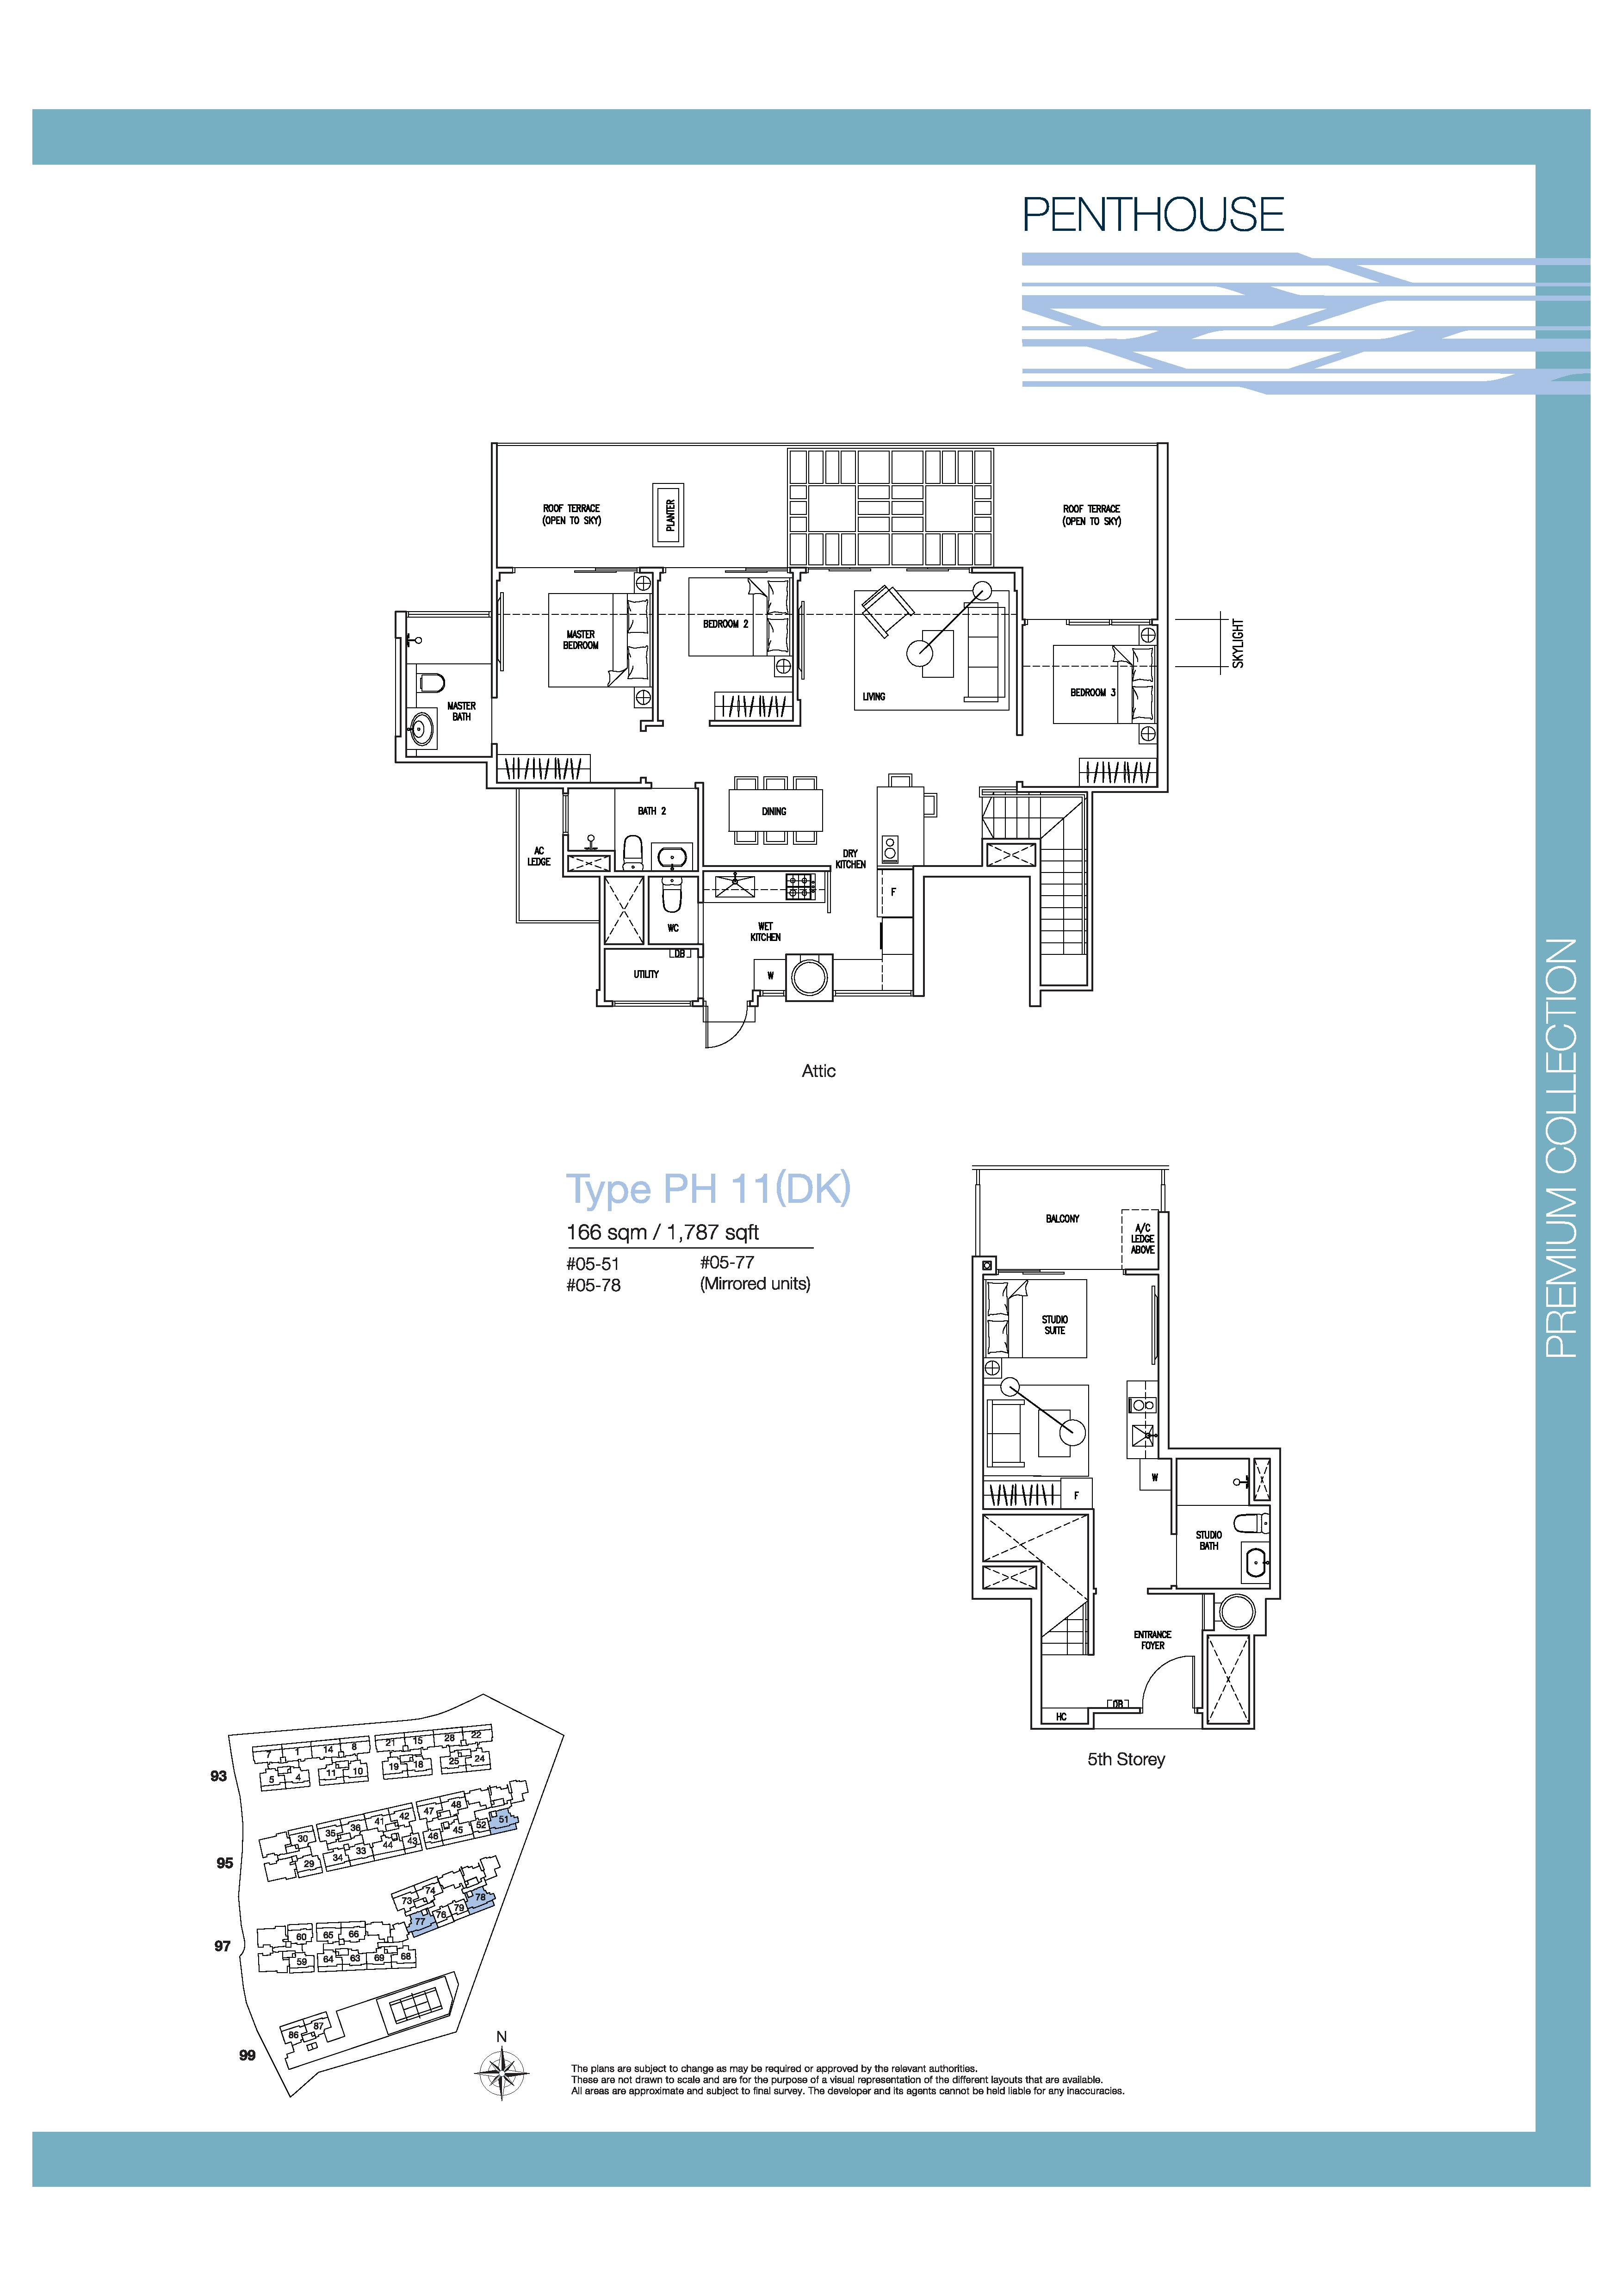 The Nautical 4 Bedroom Dual Key Penthouse Floor Plans Type PH11(DK)